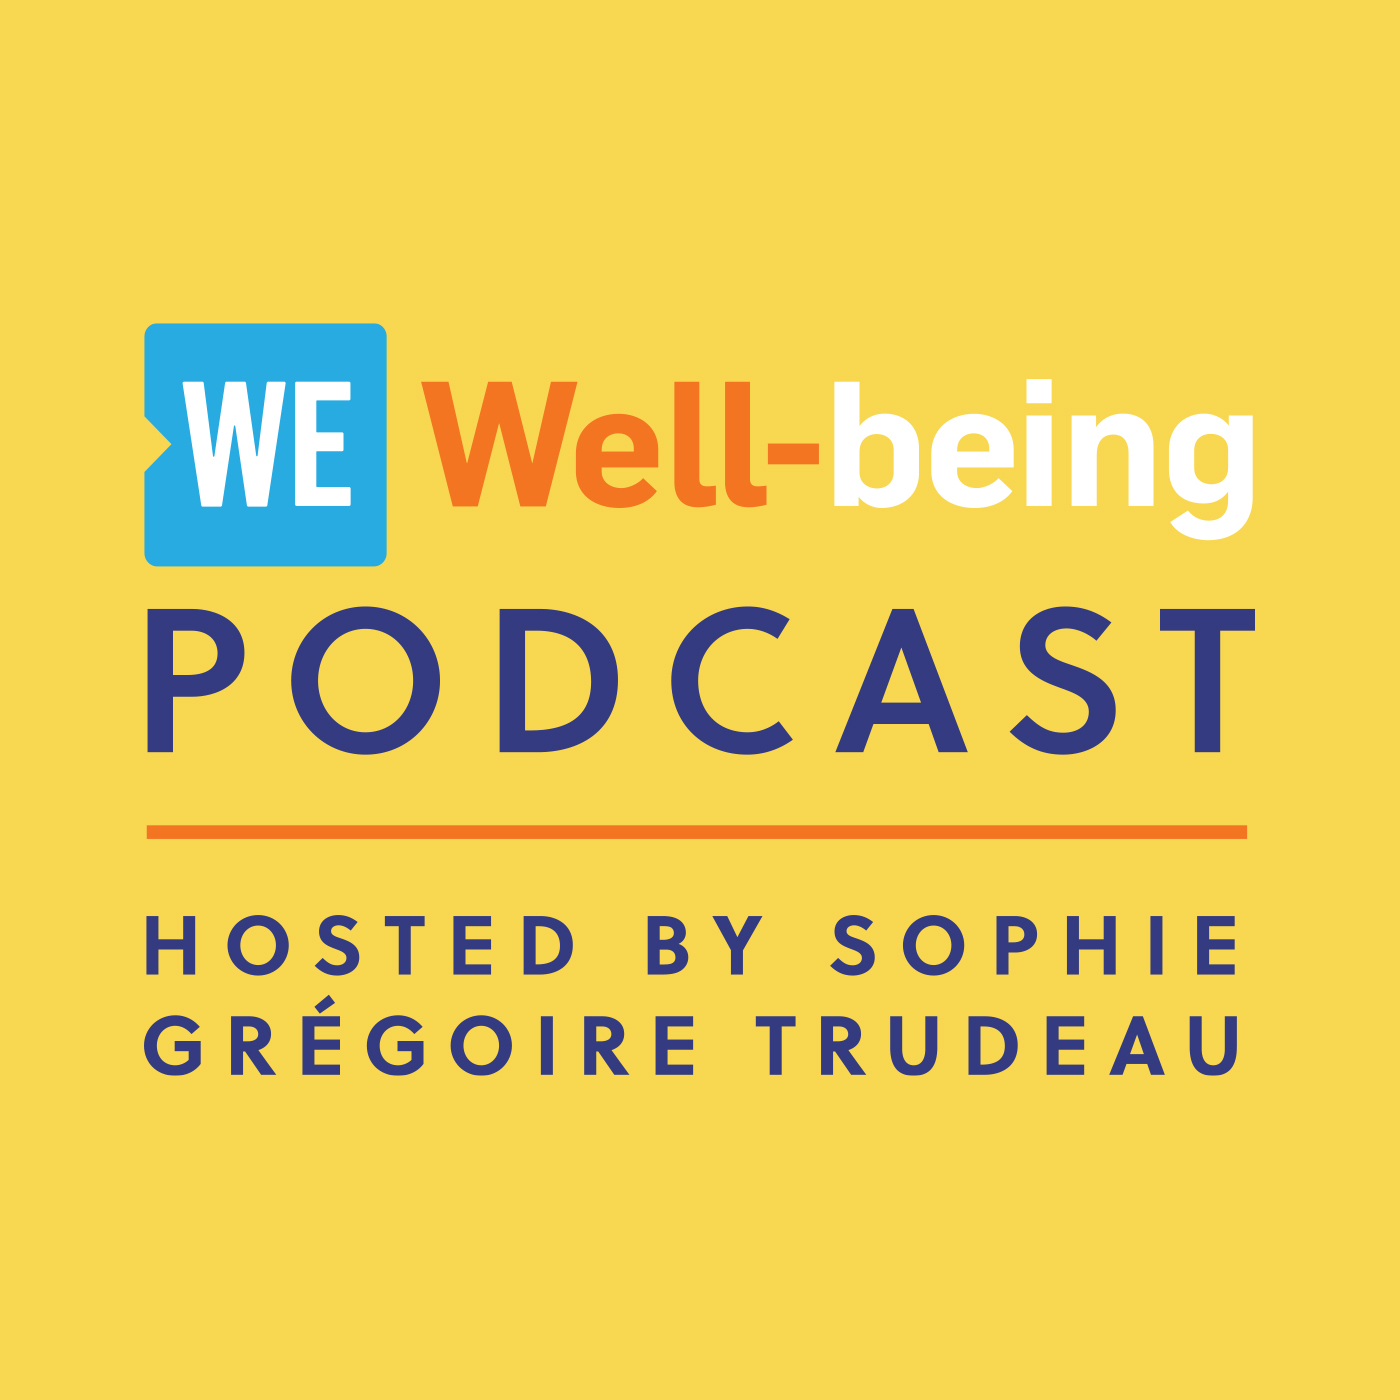 WE Well-being Podcast